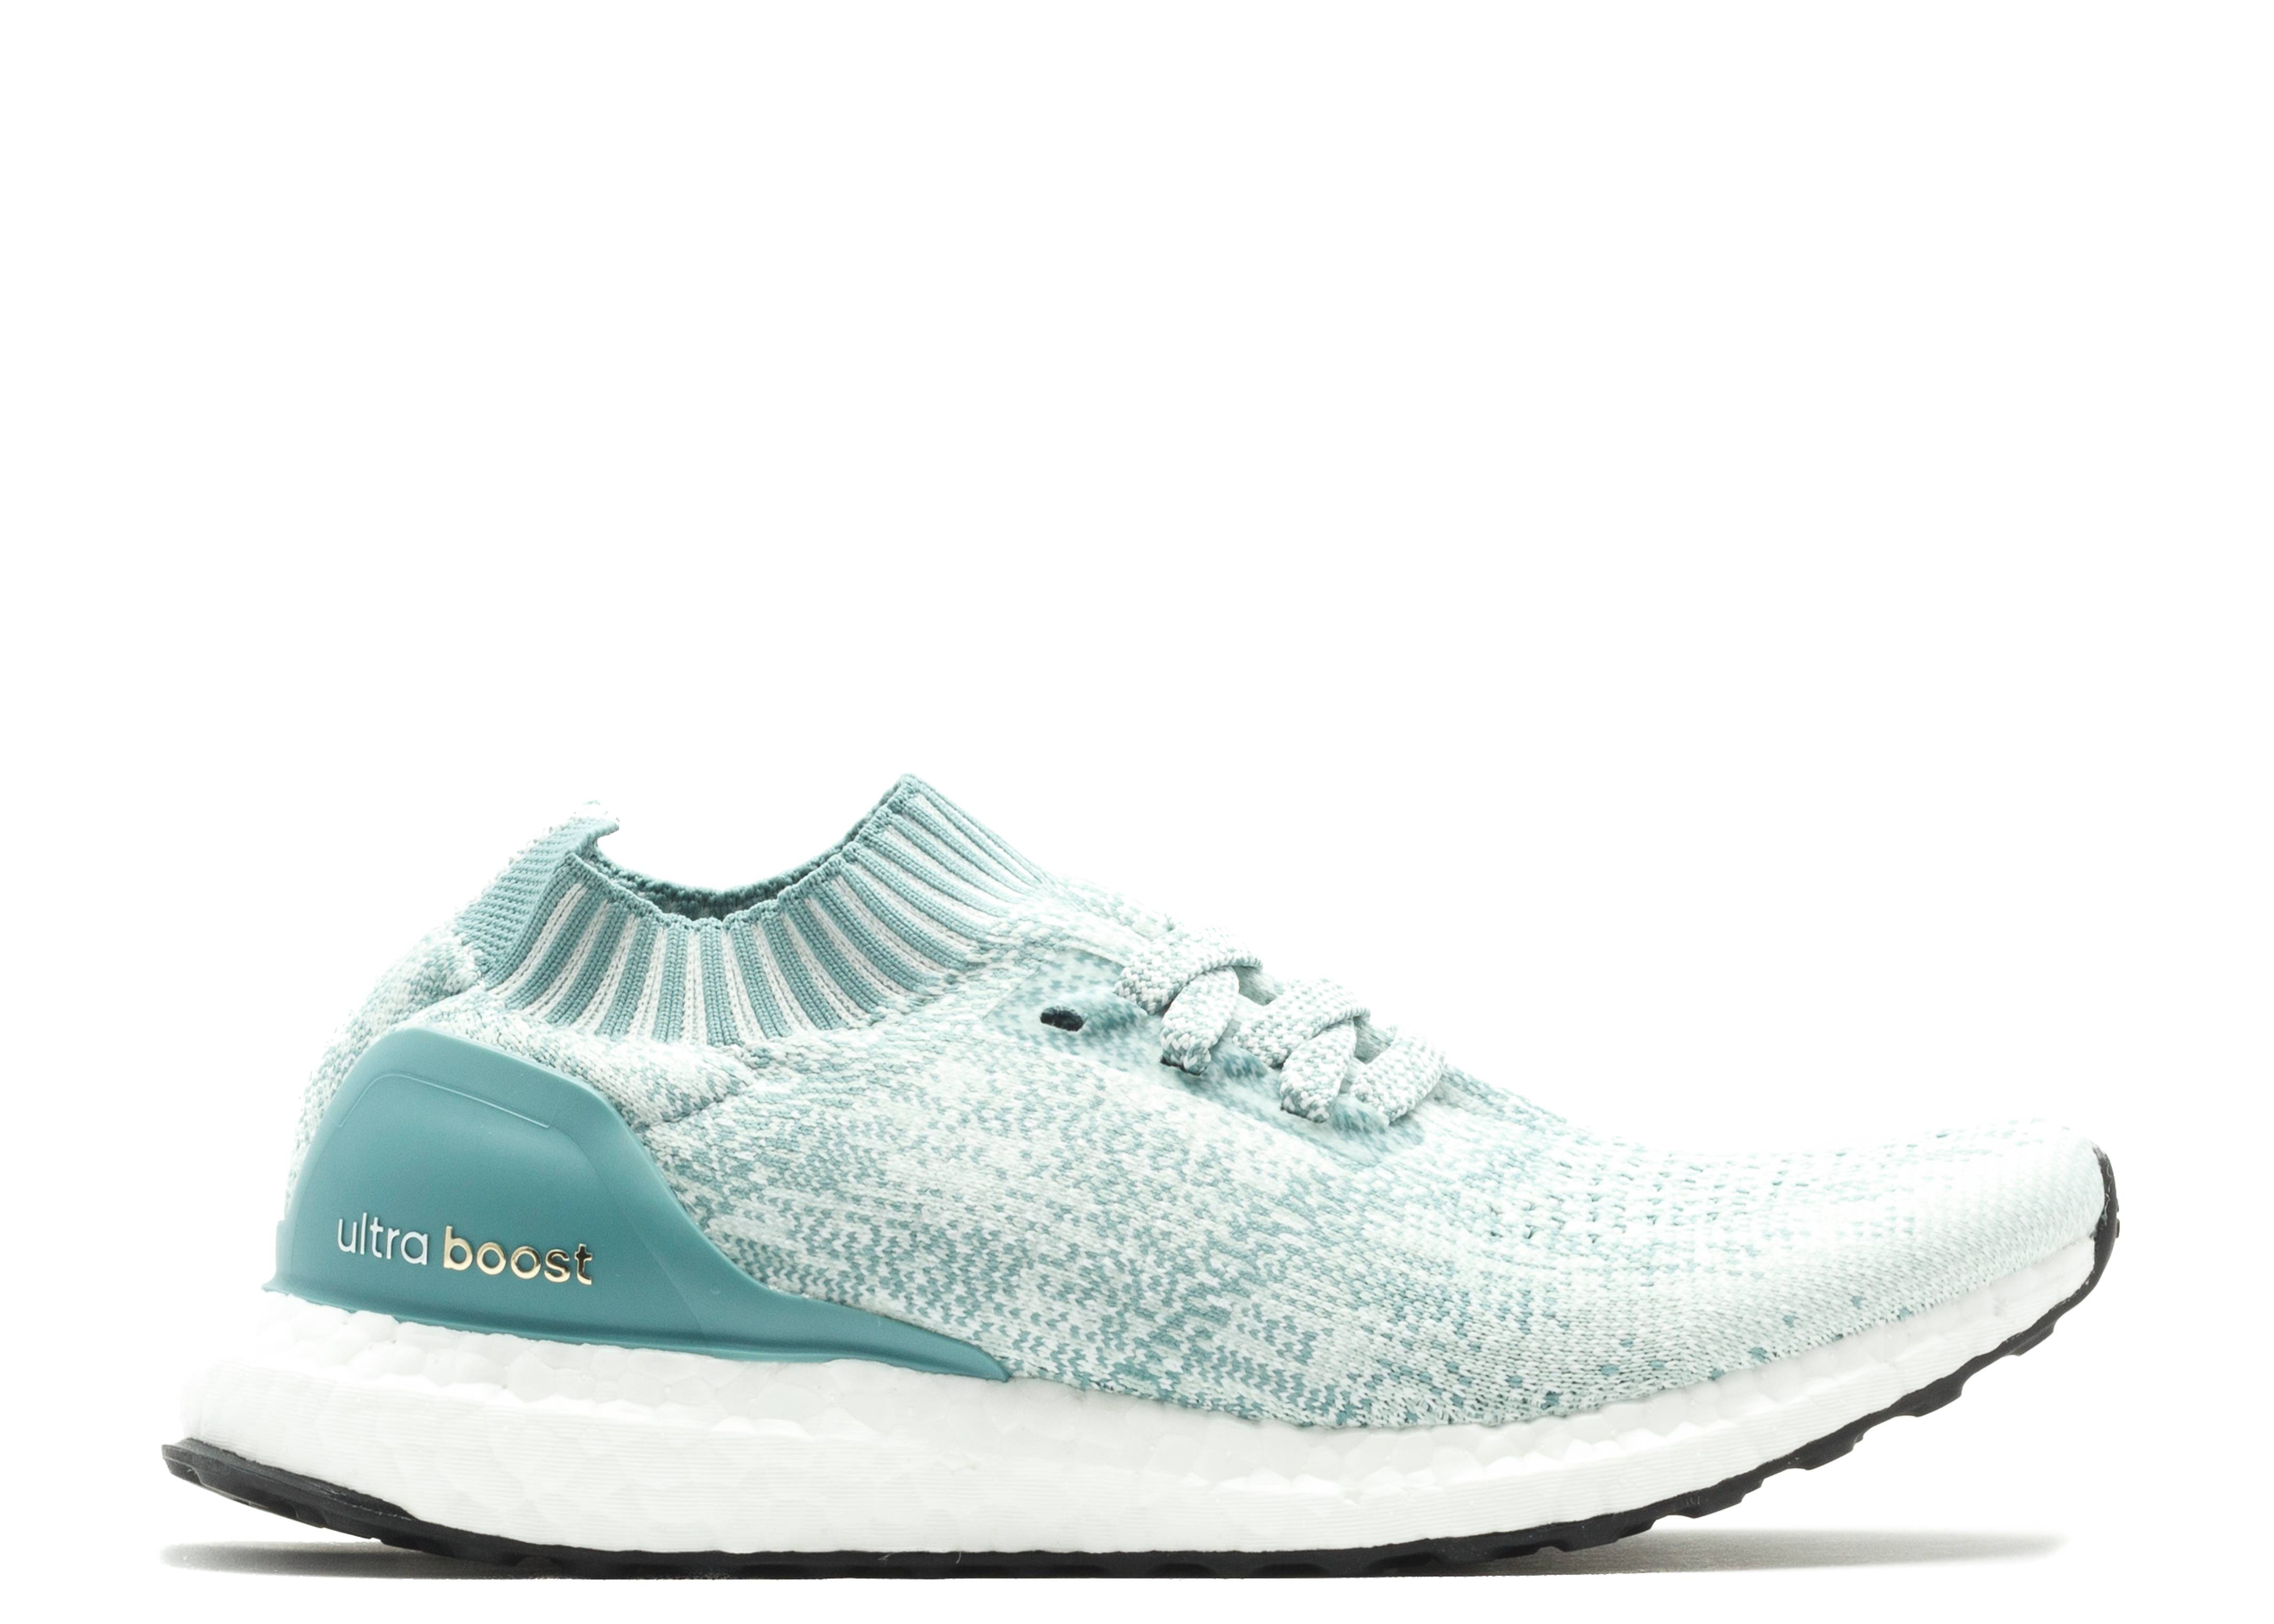 new arrival 30598 c2532 Ultra Boost Uncage W - Adidas - bb3905 - teal white   Flight Club